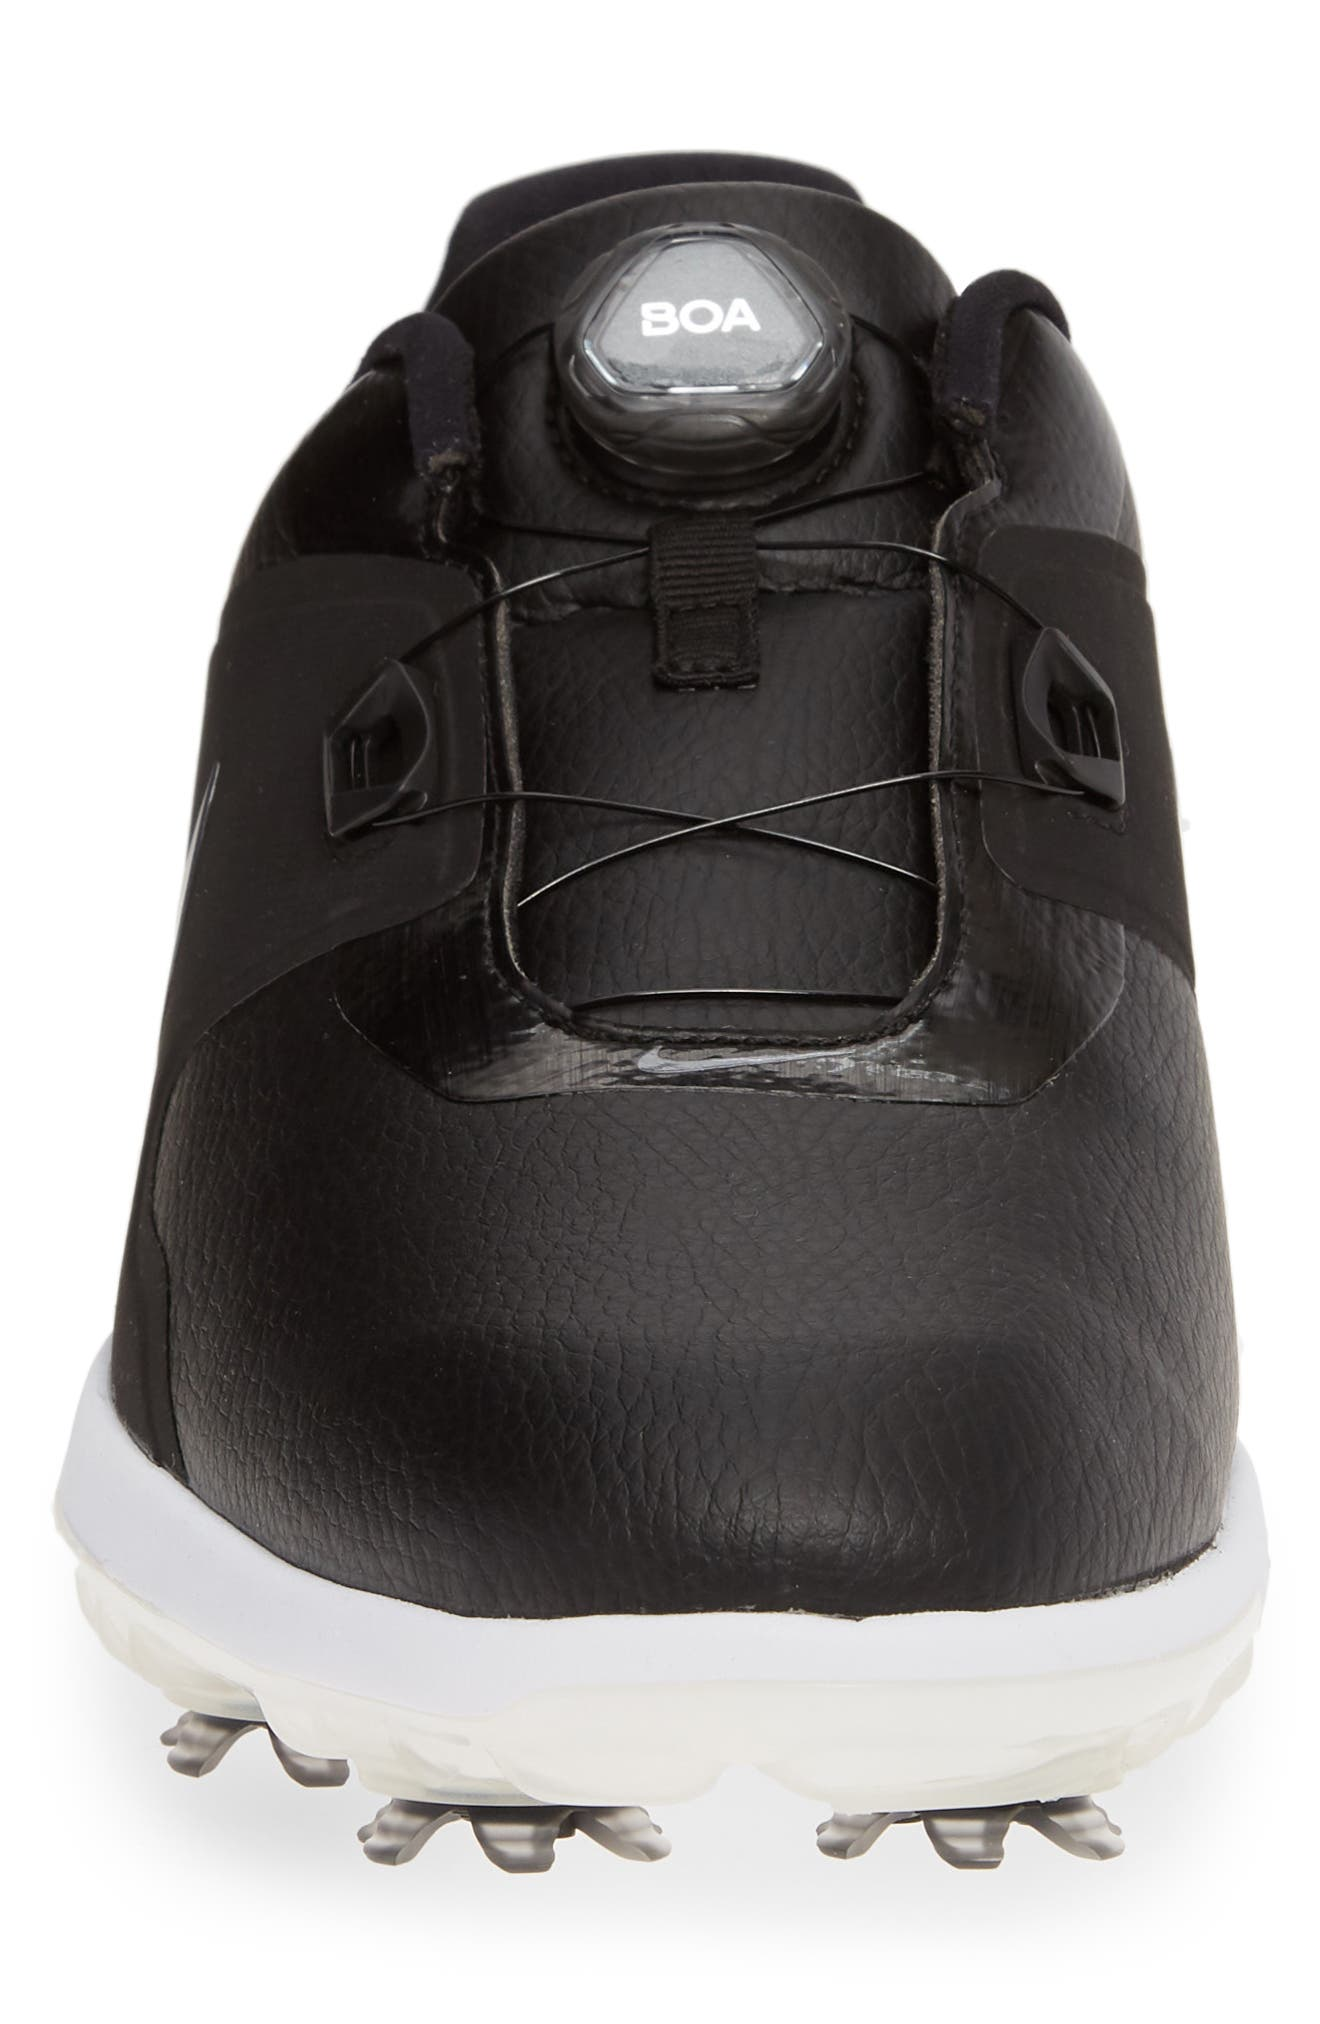 NIKE,                             Vapor Pro BOA Waterproof Golf Shoe,                             Alternate thumbnail 4, color,                             BLACK/ COOL GREY/ WHITE